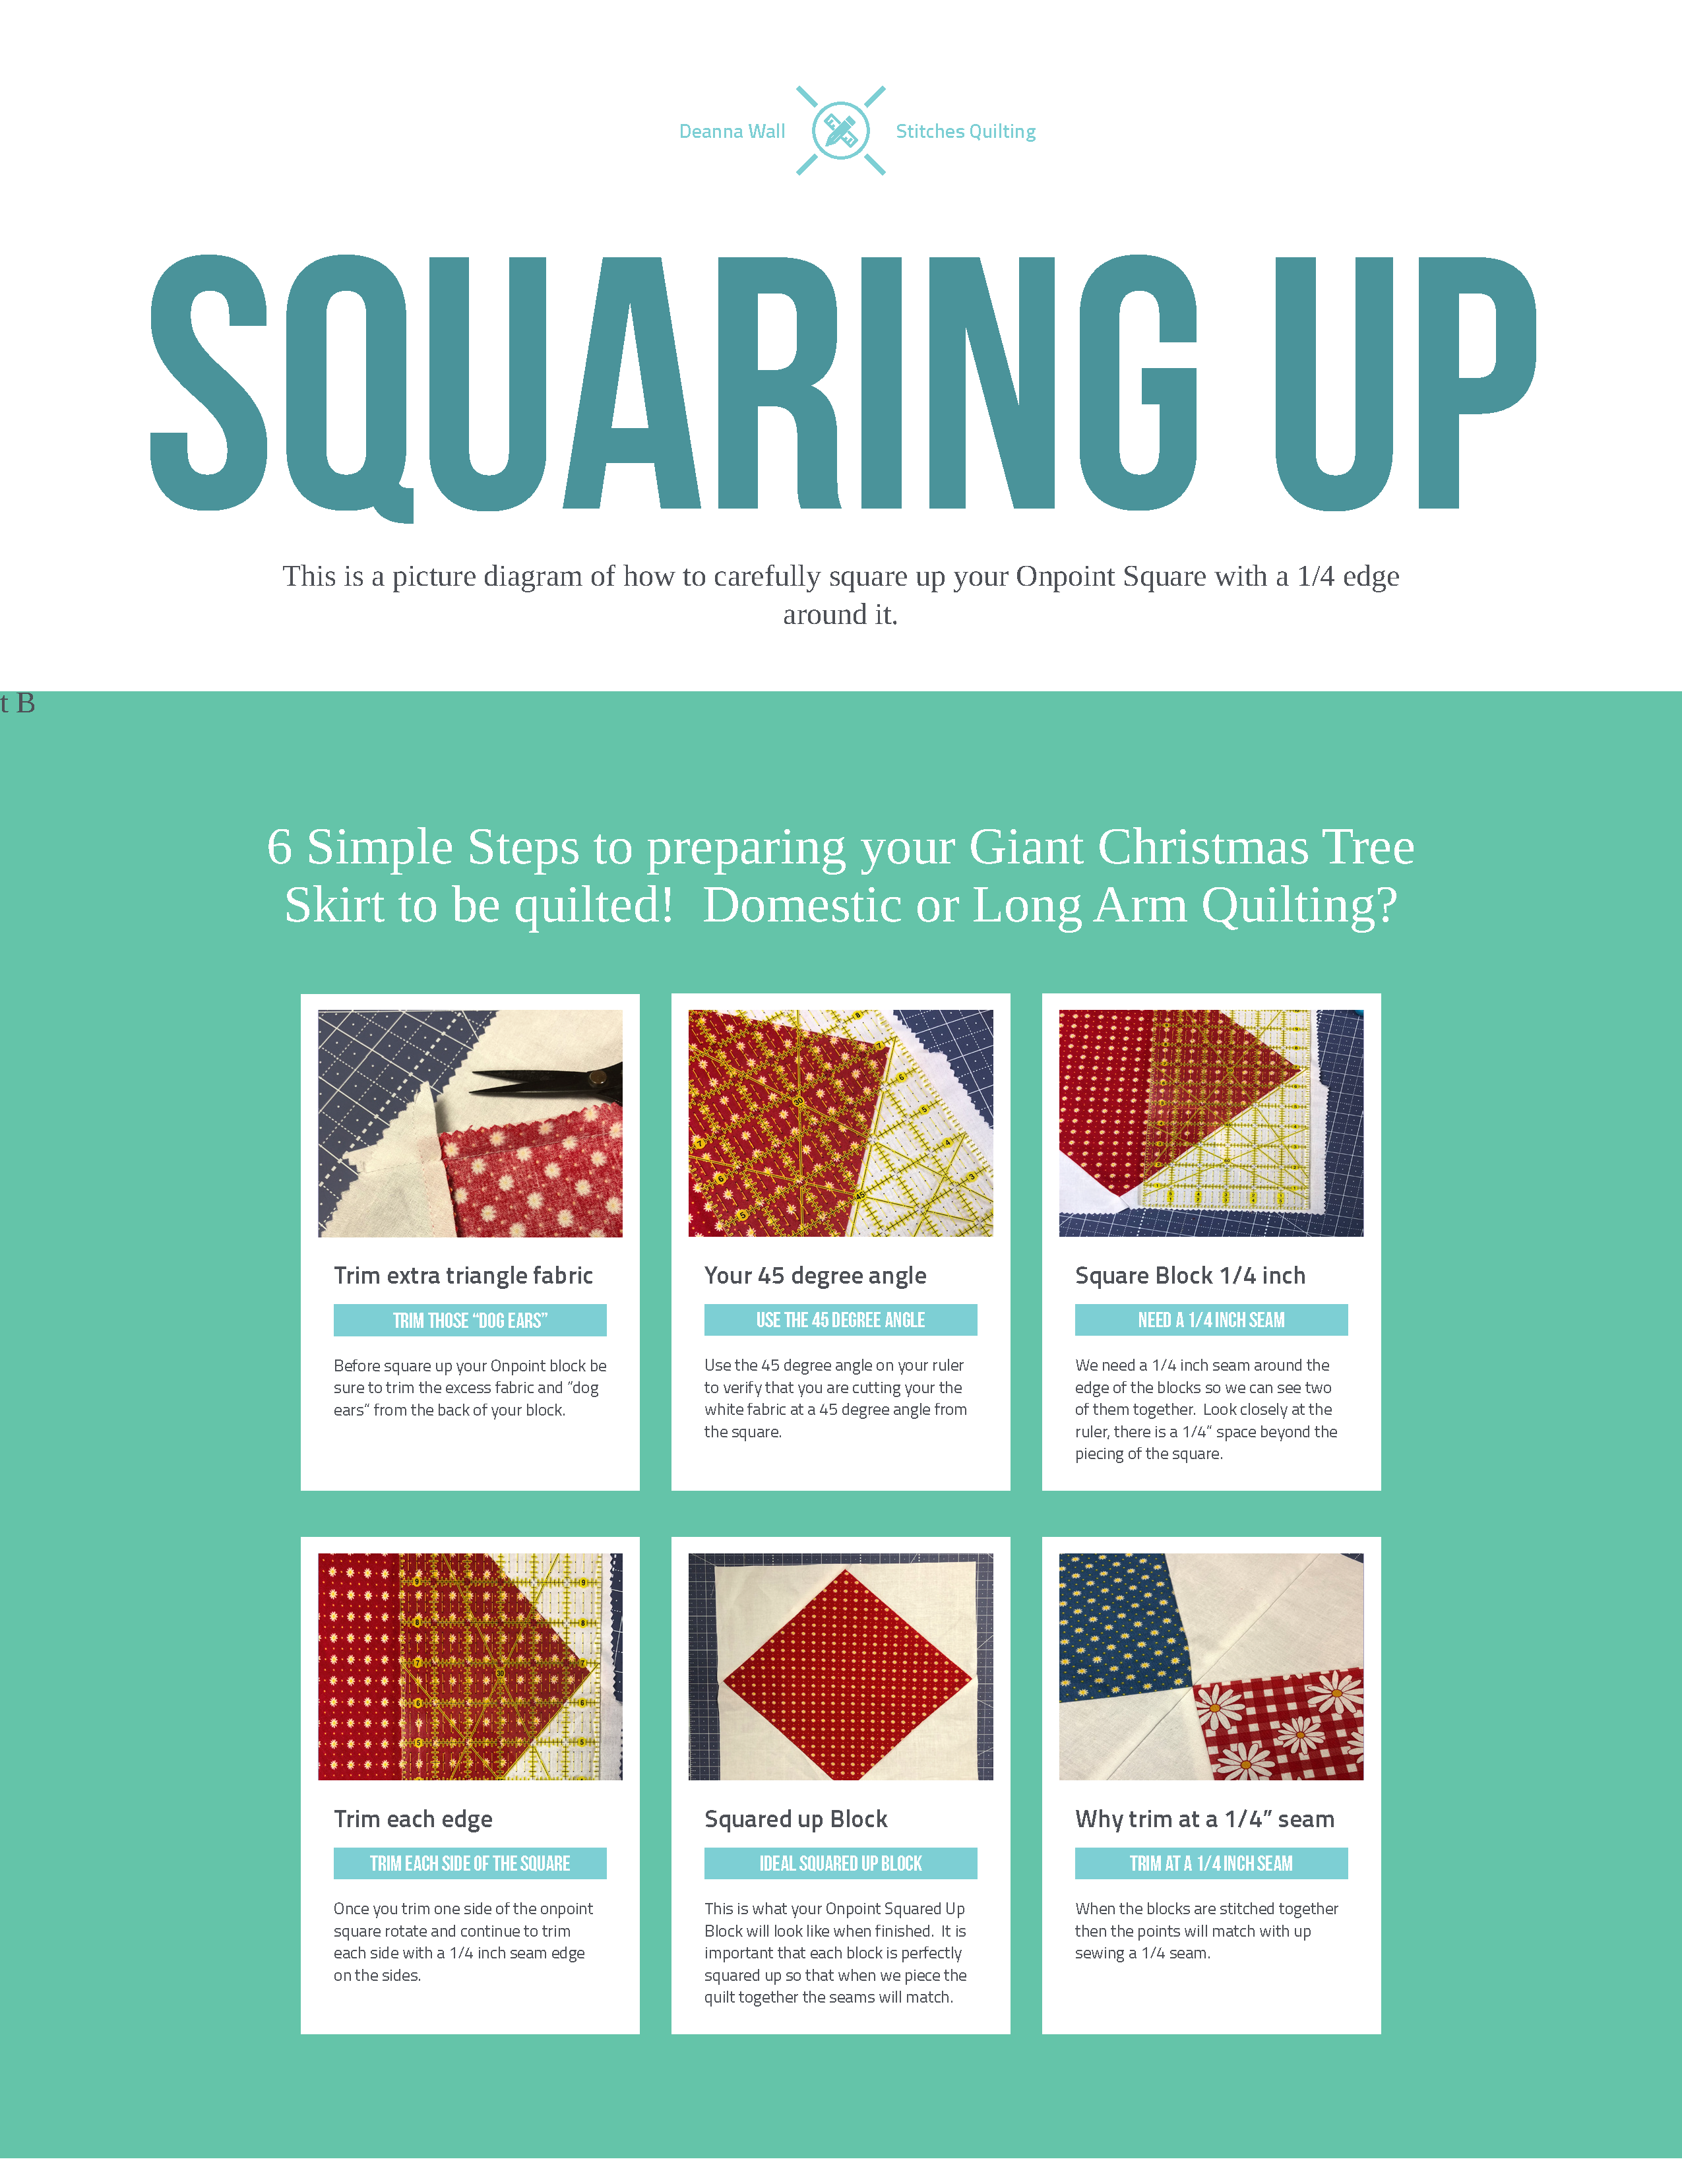 Square Up Your Onpoint Square Quilt Block with a 1/4 inch seam tutorial